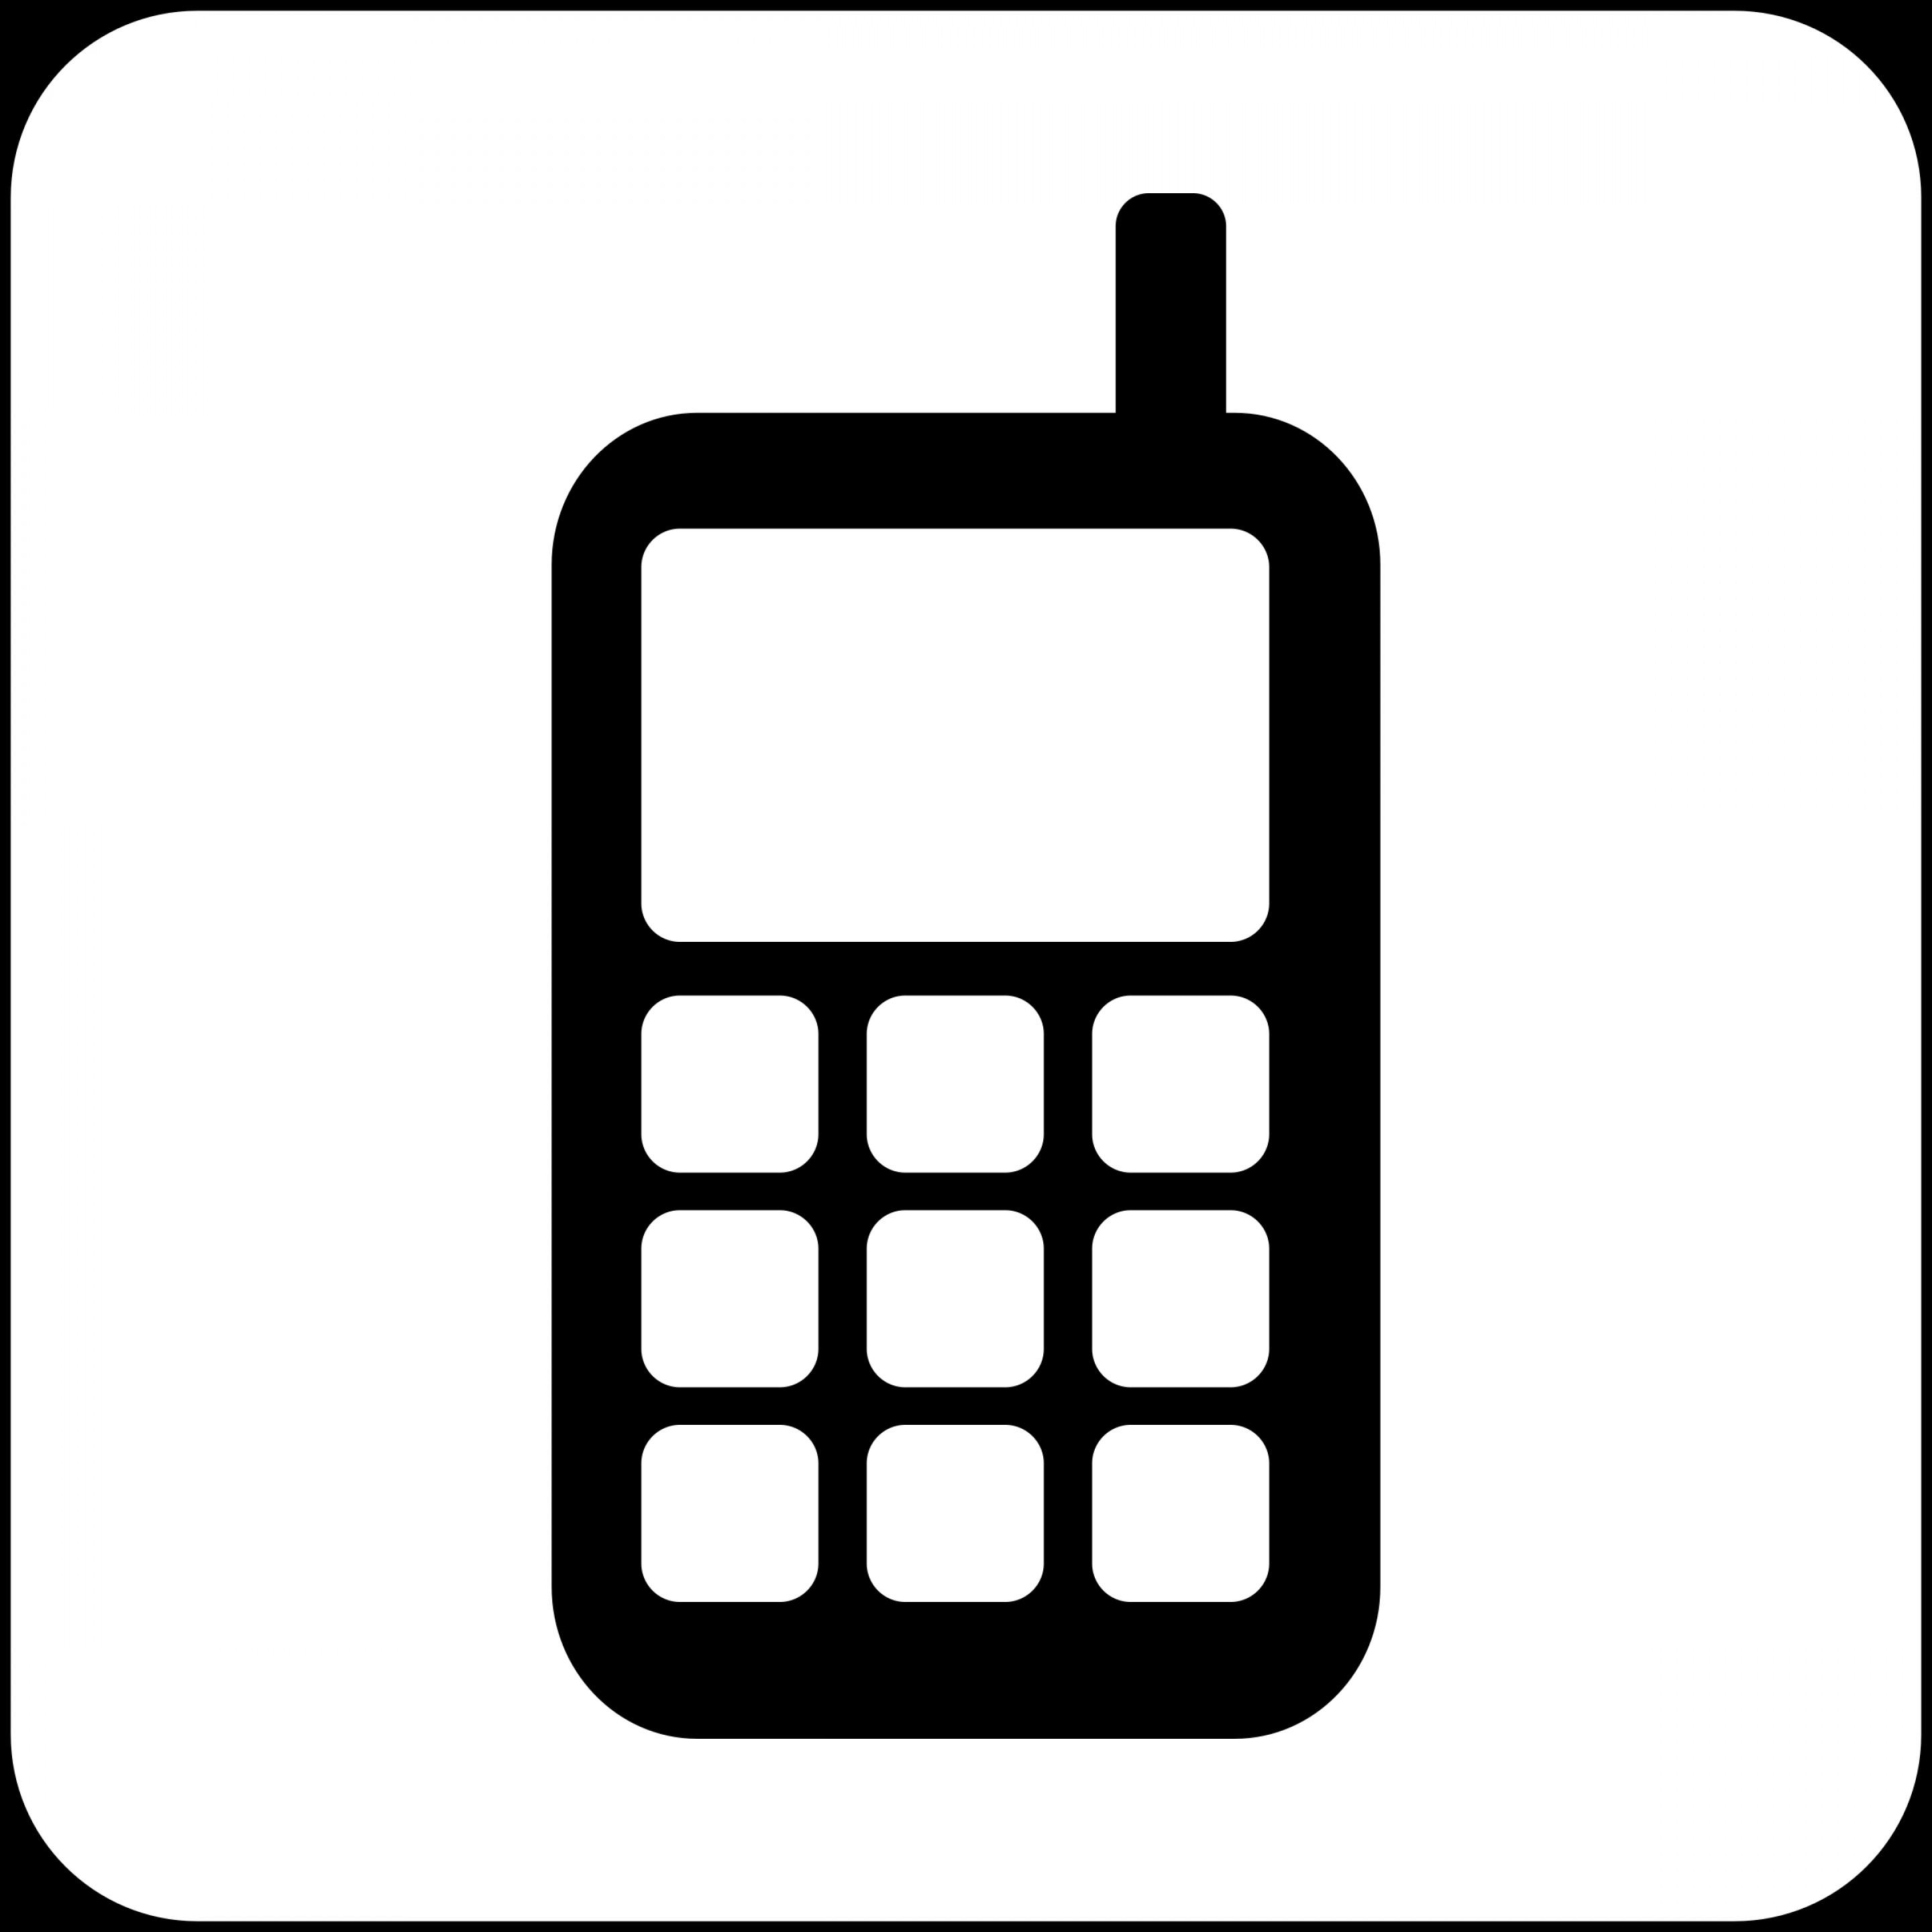 2880x2880 Best 15 Big Cellphone Icon Vector Clipart Picture Cdr